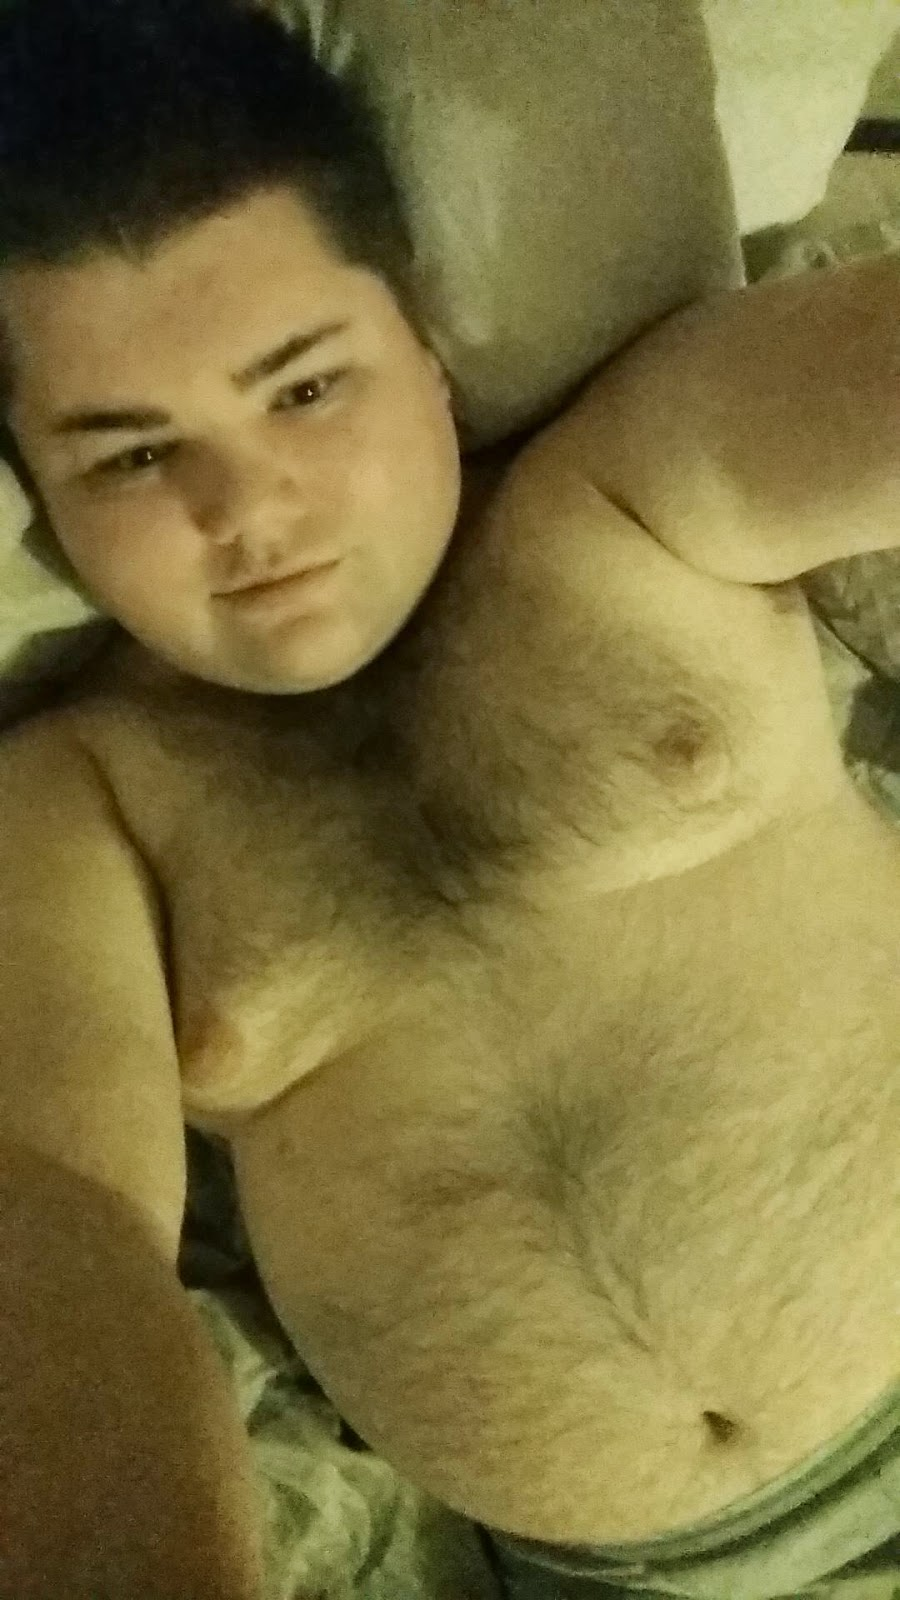 Lui fait gay bear chubby body splendid